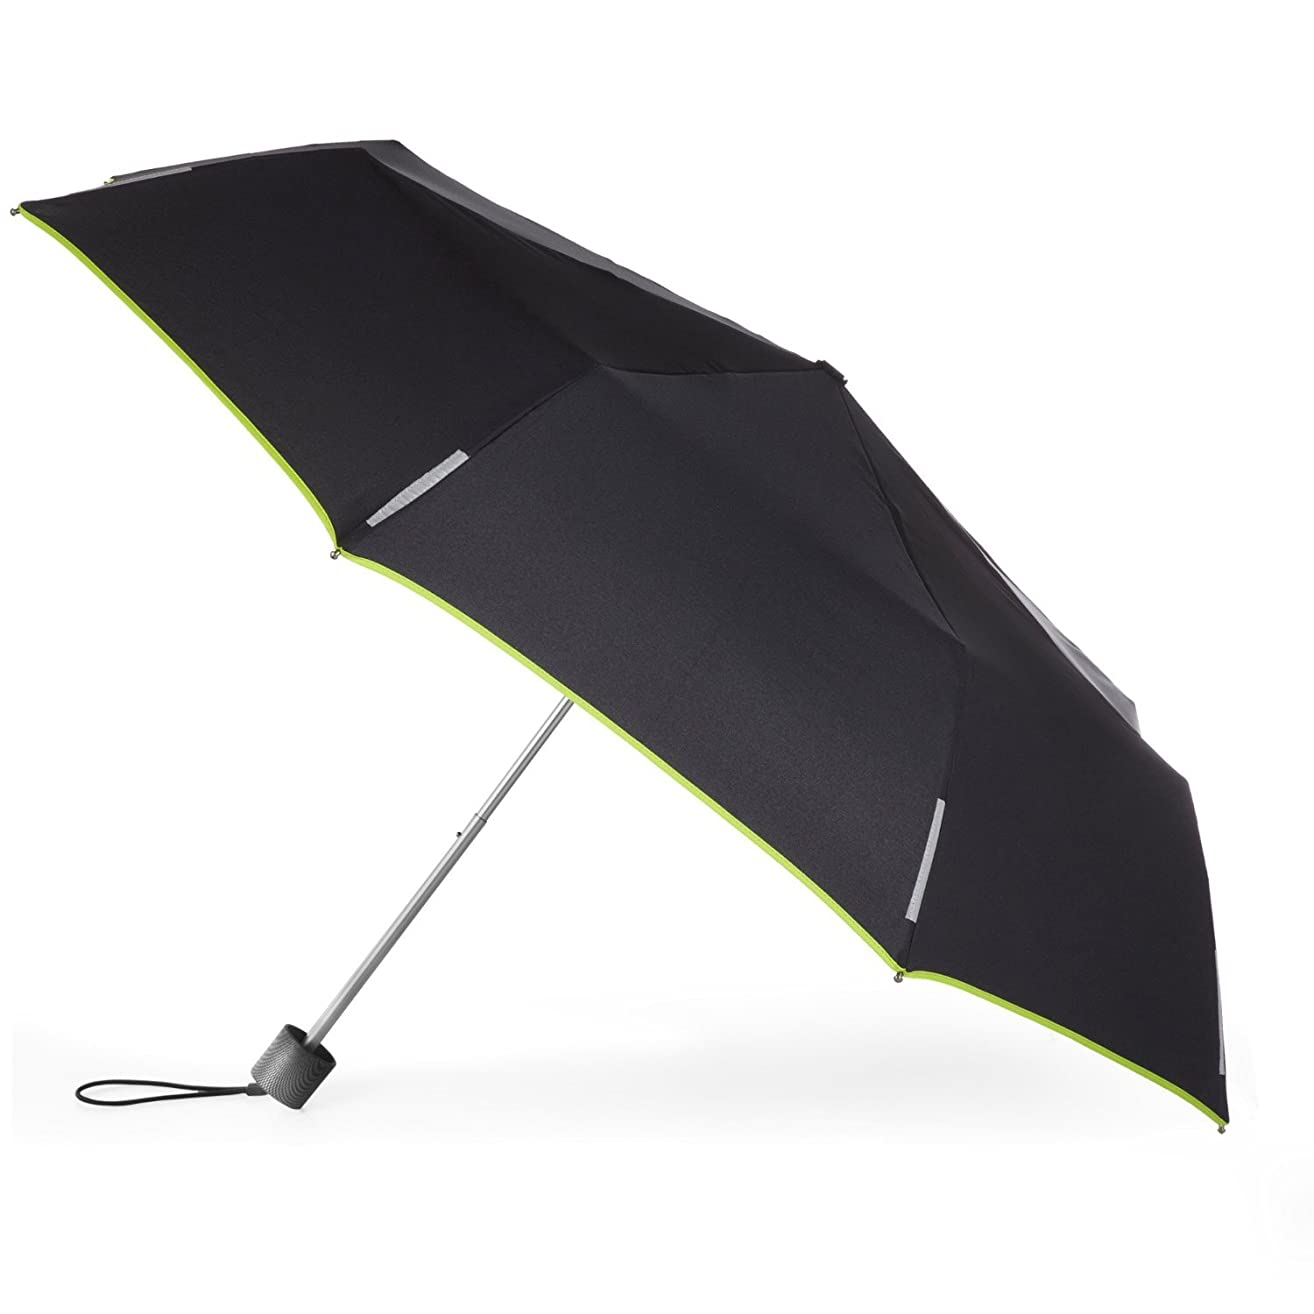 Totes TRX Manual Lightweight Trekker Umbrella by Totes (One size, Black/Apple Green Piping)